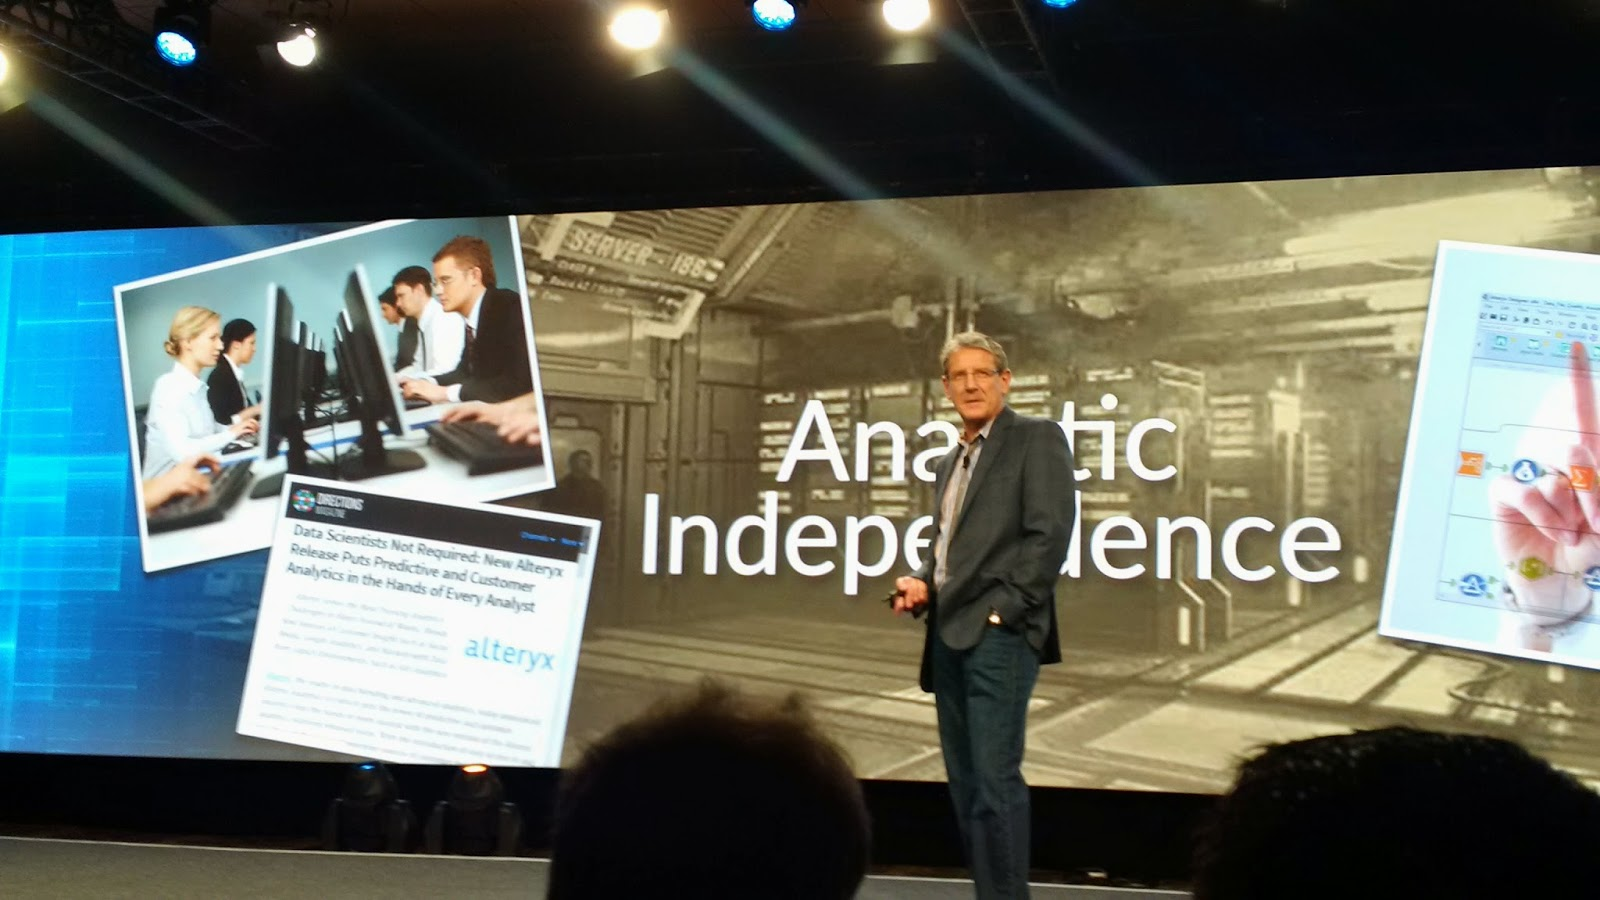 Event Report - Alteryx Inspire - Positive Growth on Product, Go to